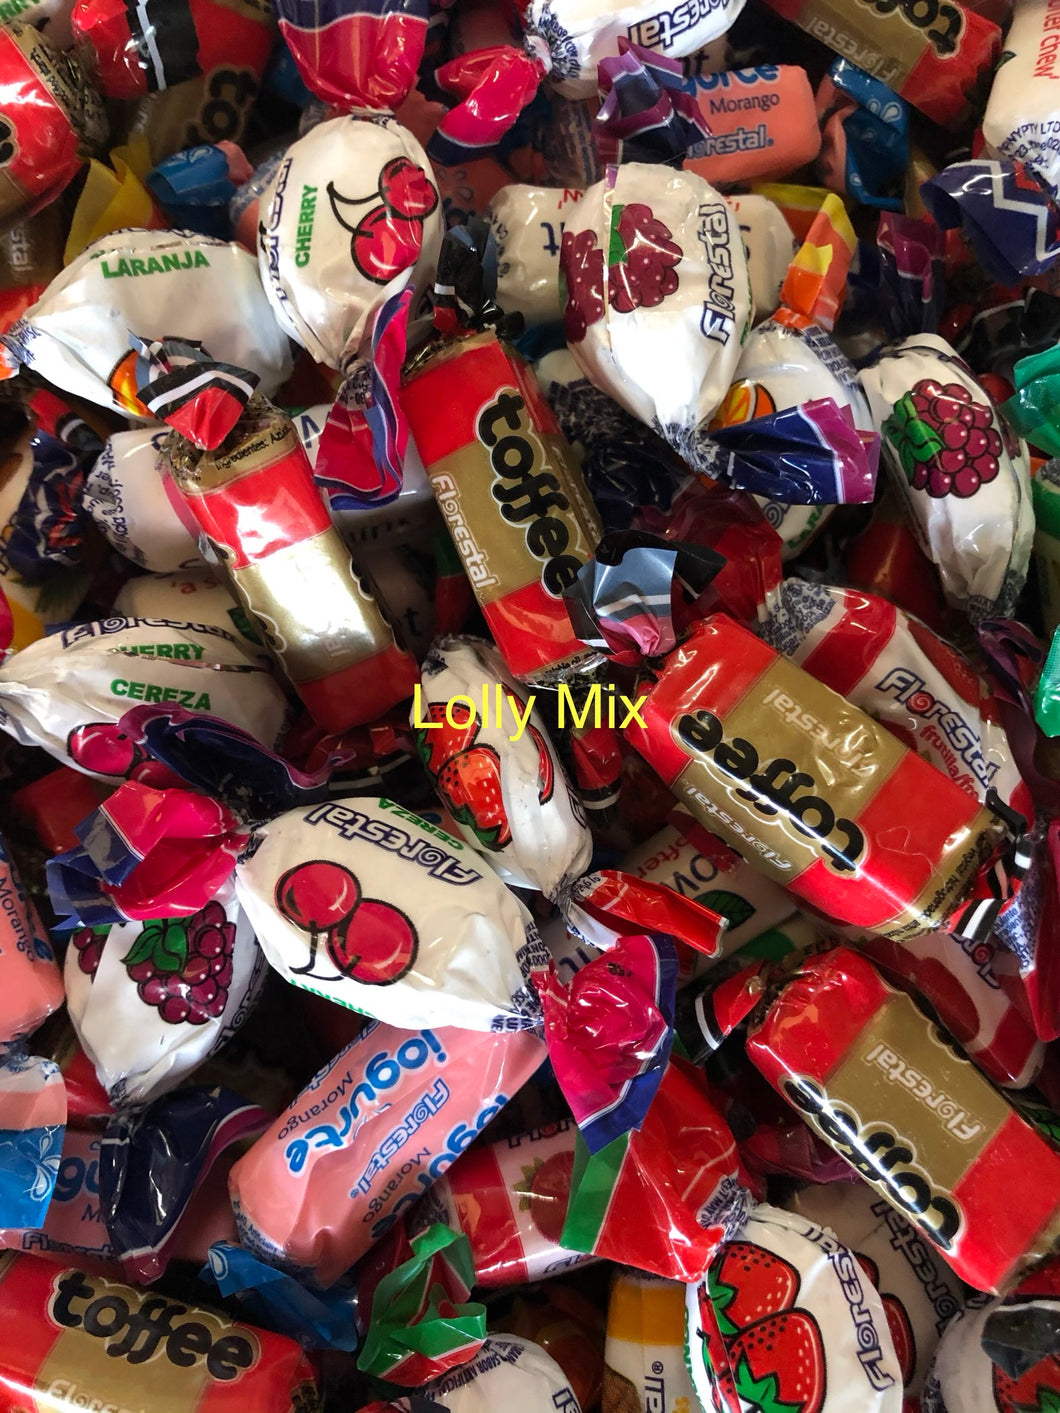 Lolly mix